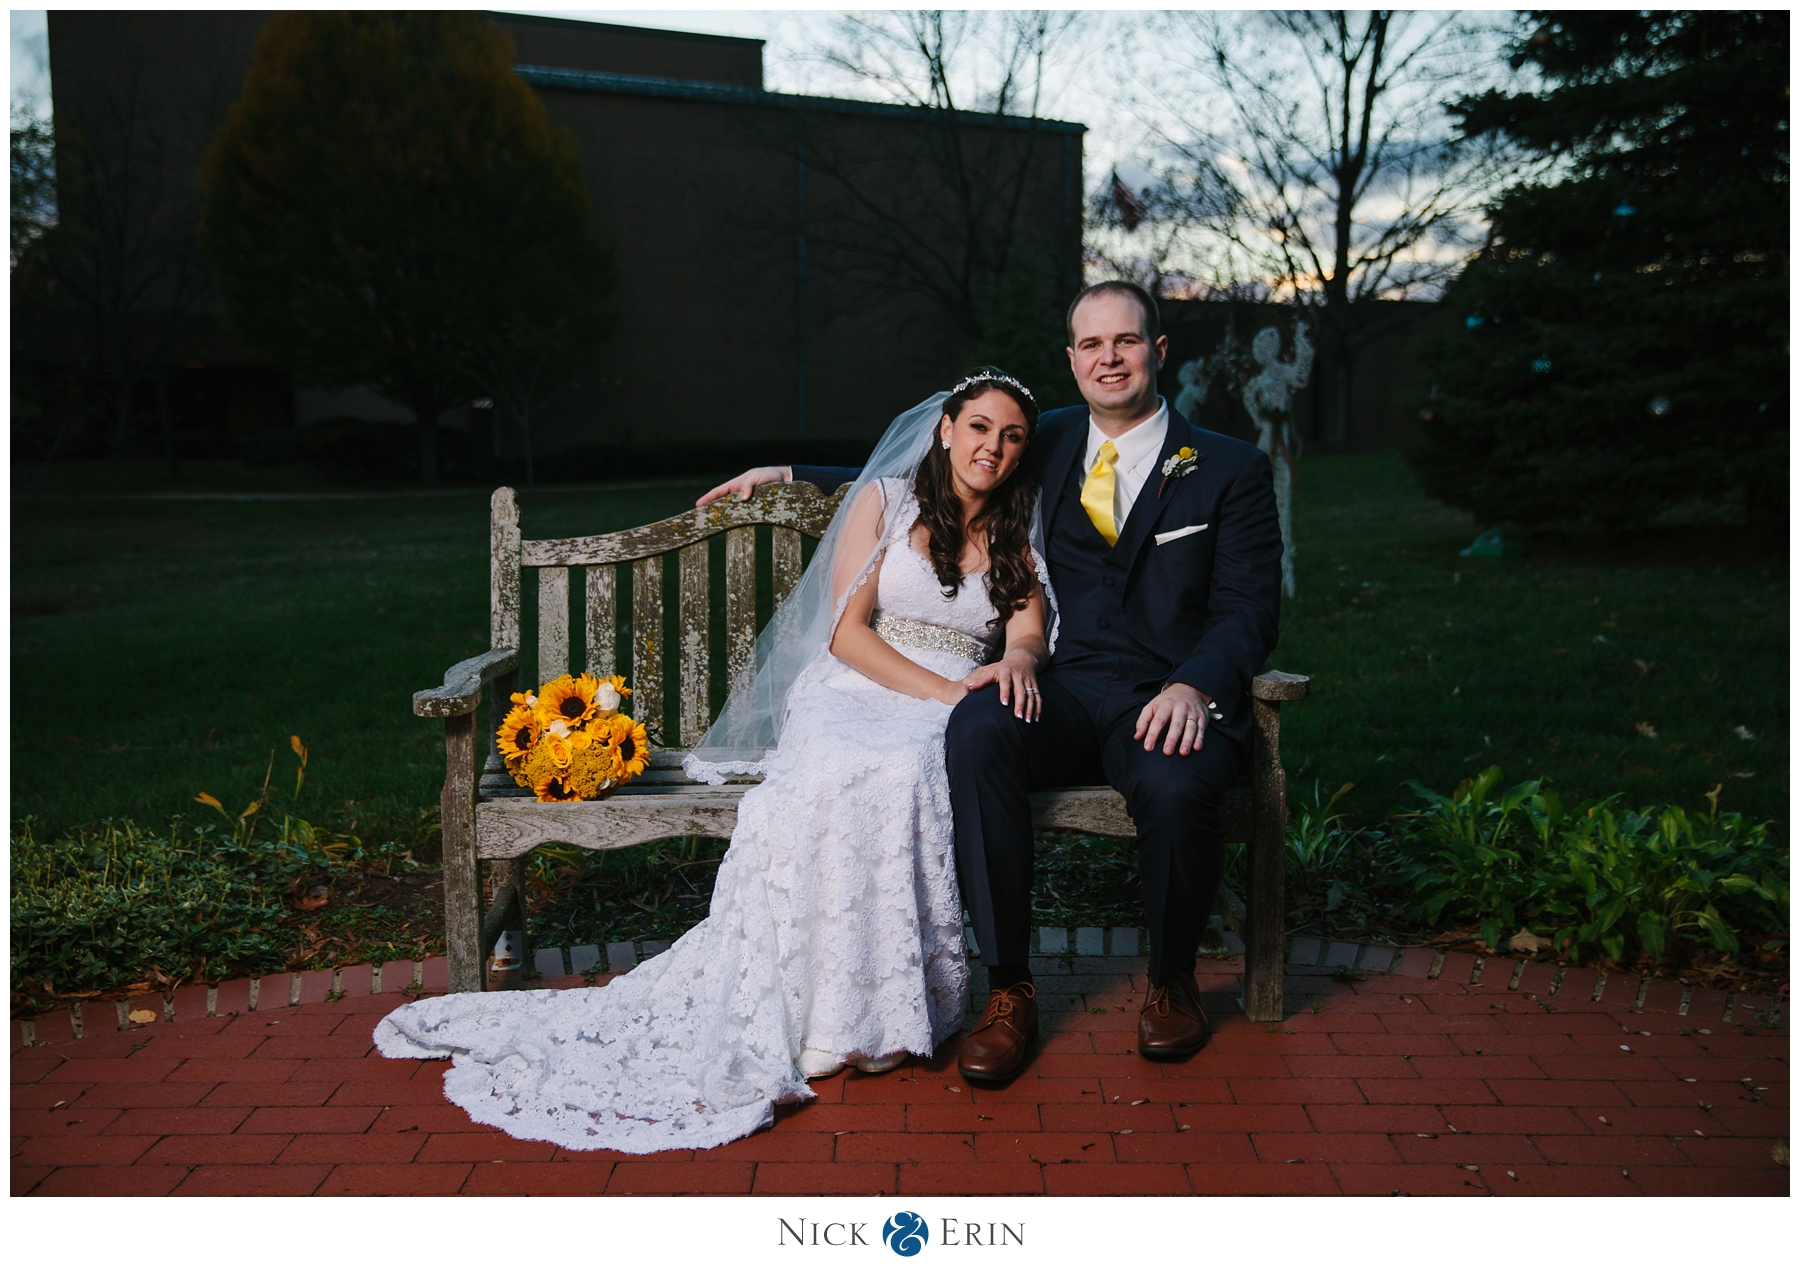 Donner_Photography_Fort Myer Wedding_Katie & Will_0007